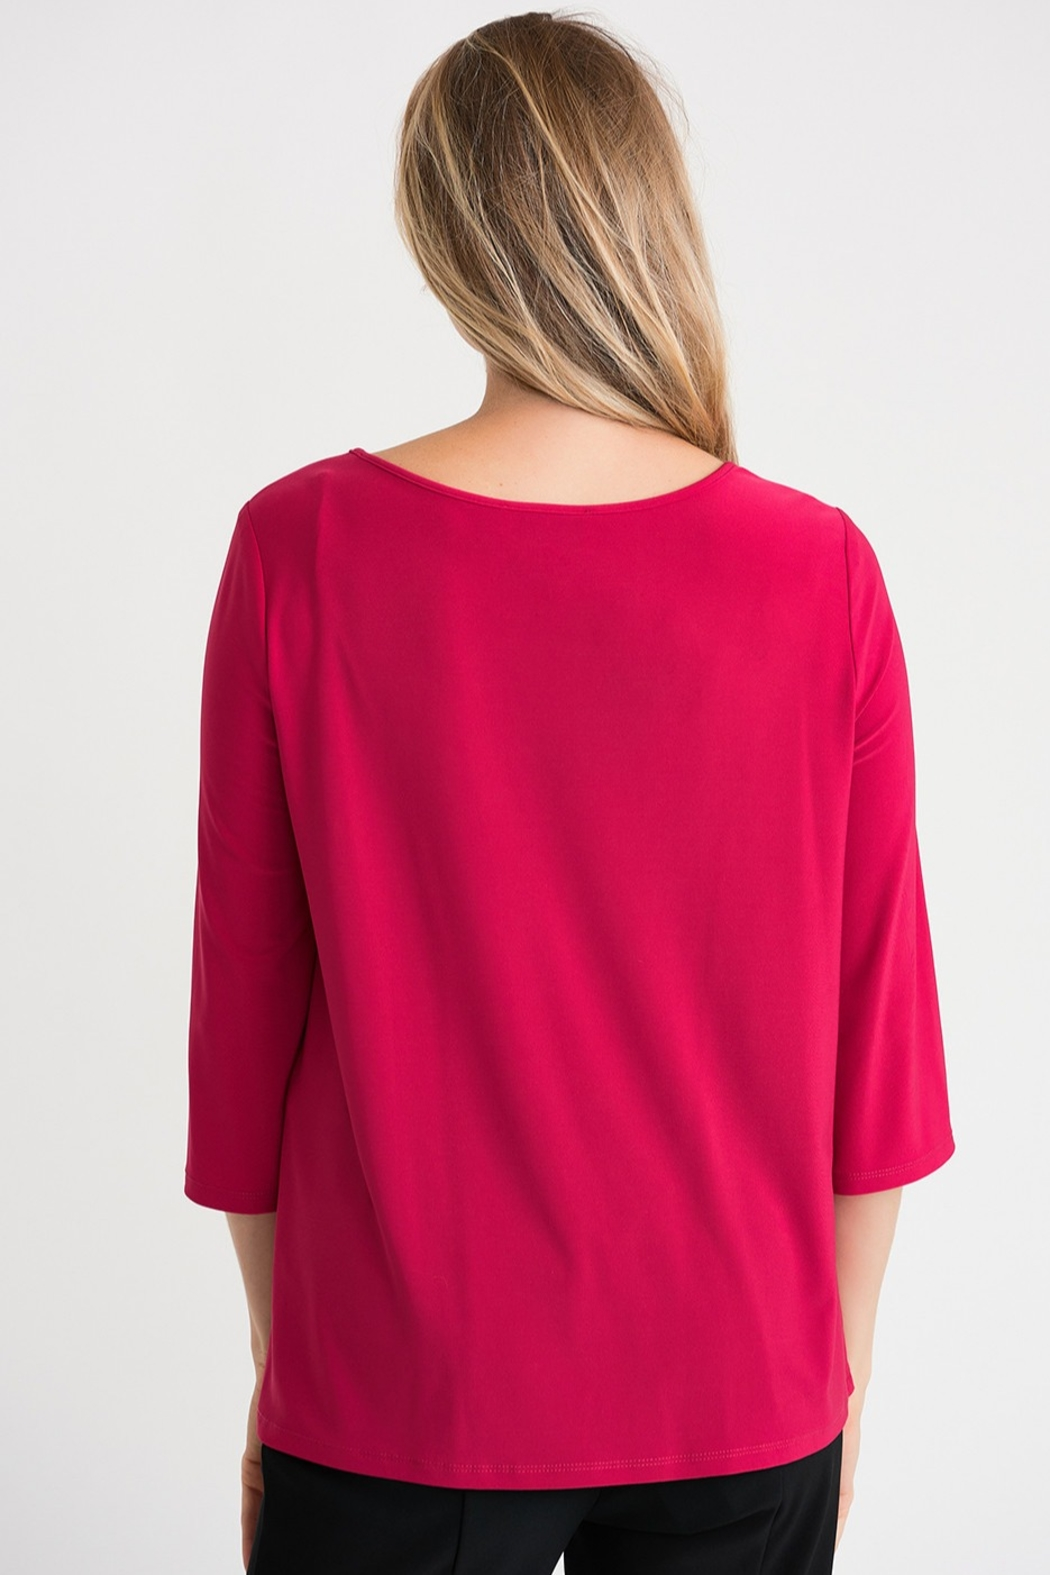 Joseph Ribikoff Cerise top with soft tie knot - Side Cropped Image